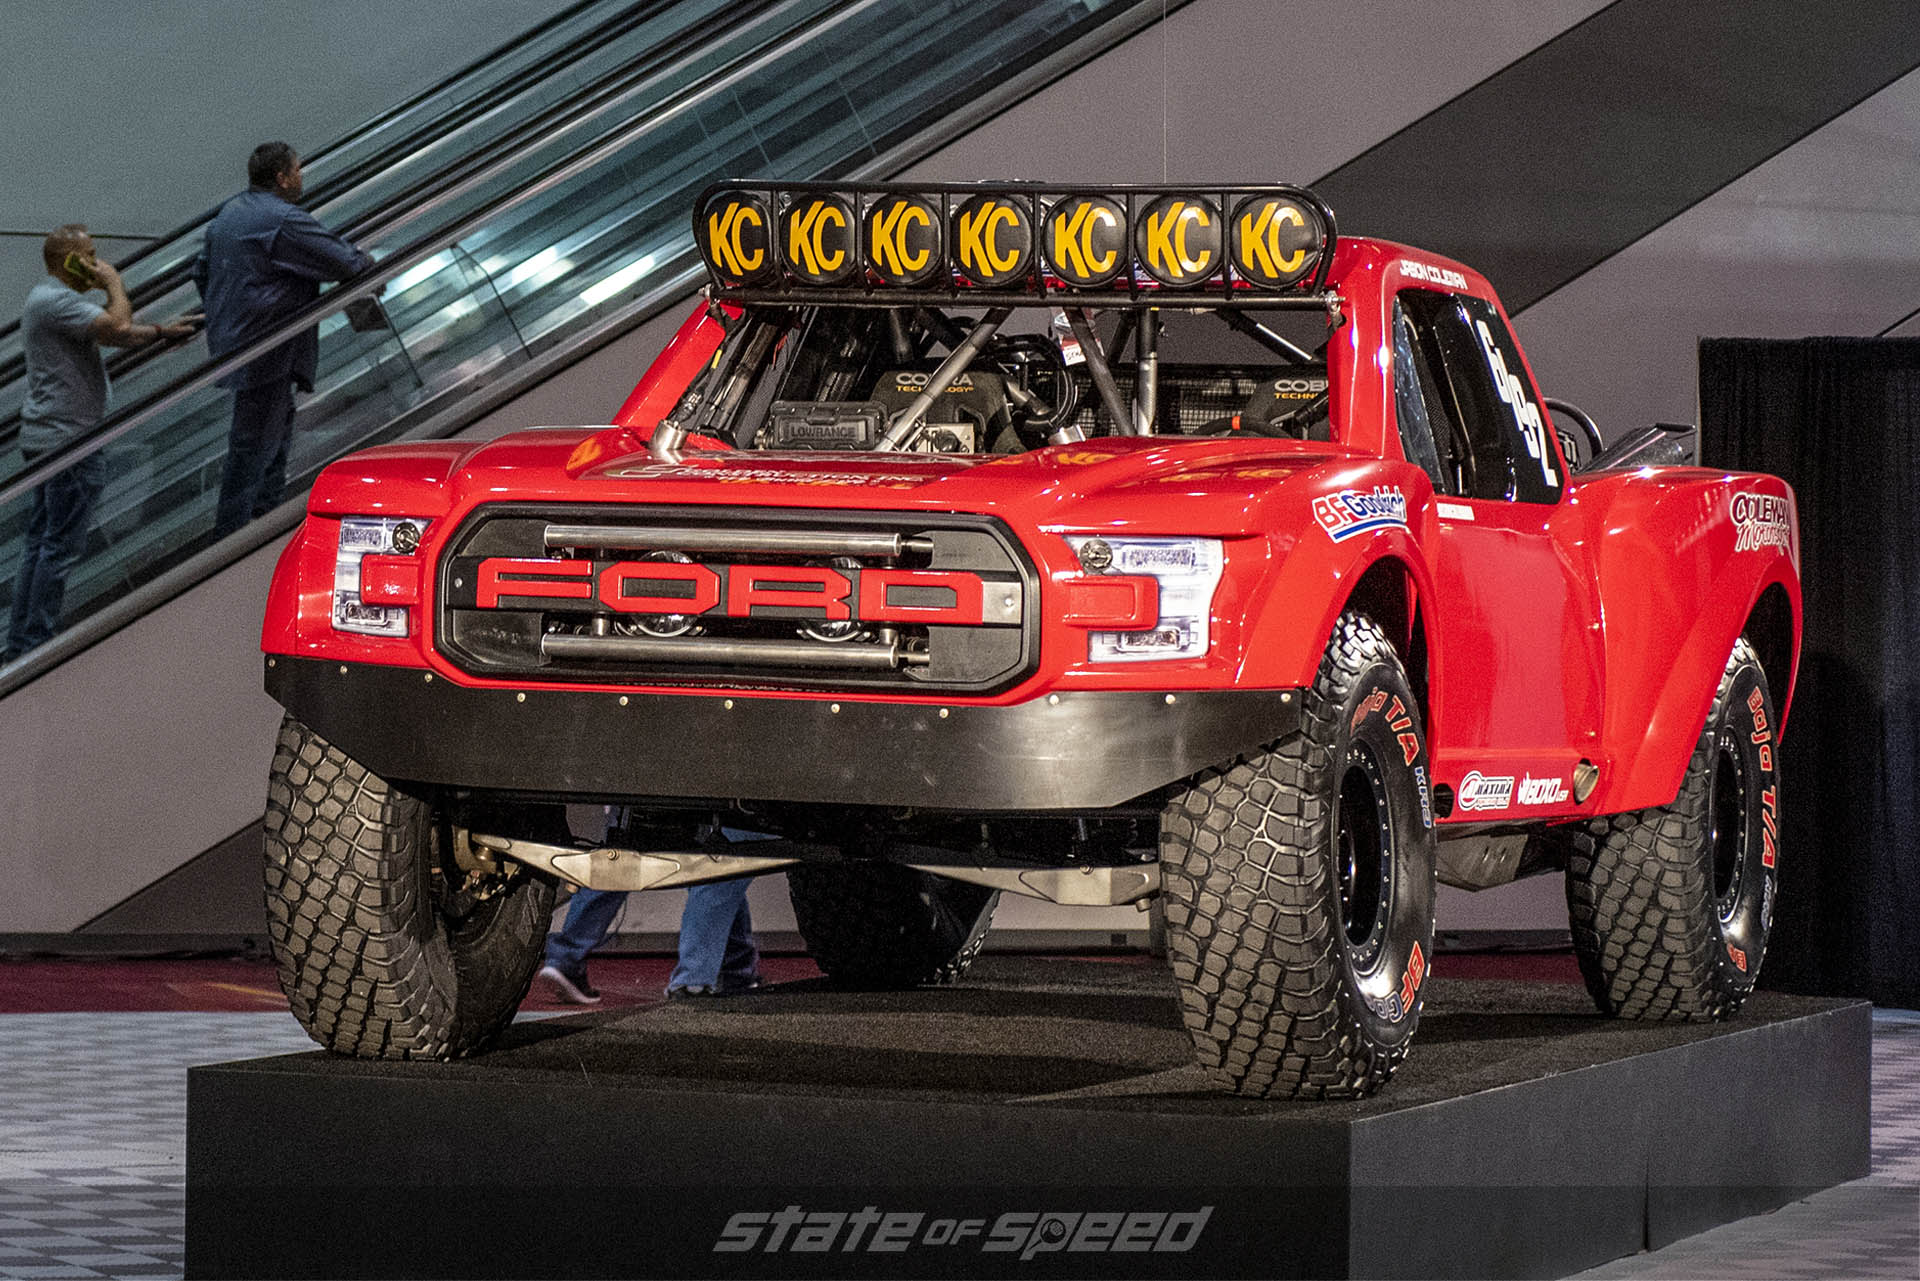 Trophy truck display in the hall of the Las Vegas Convention Center